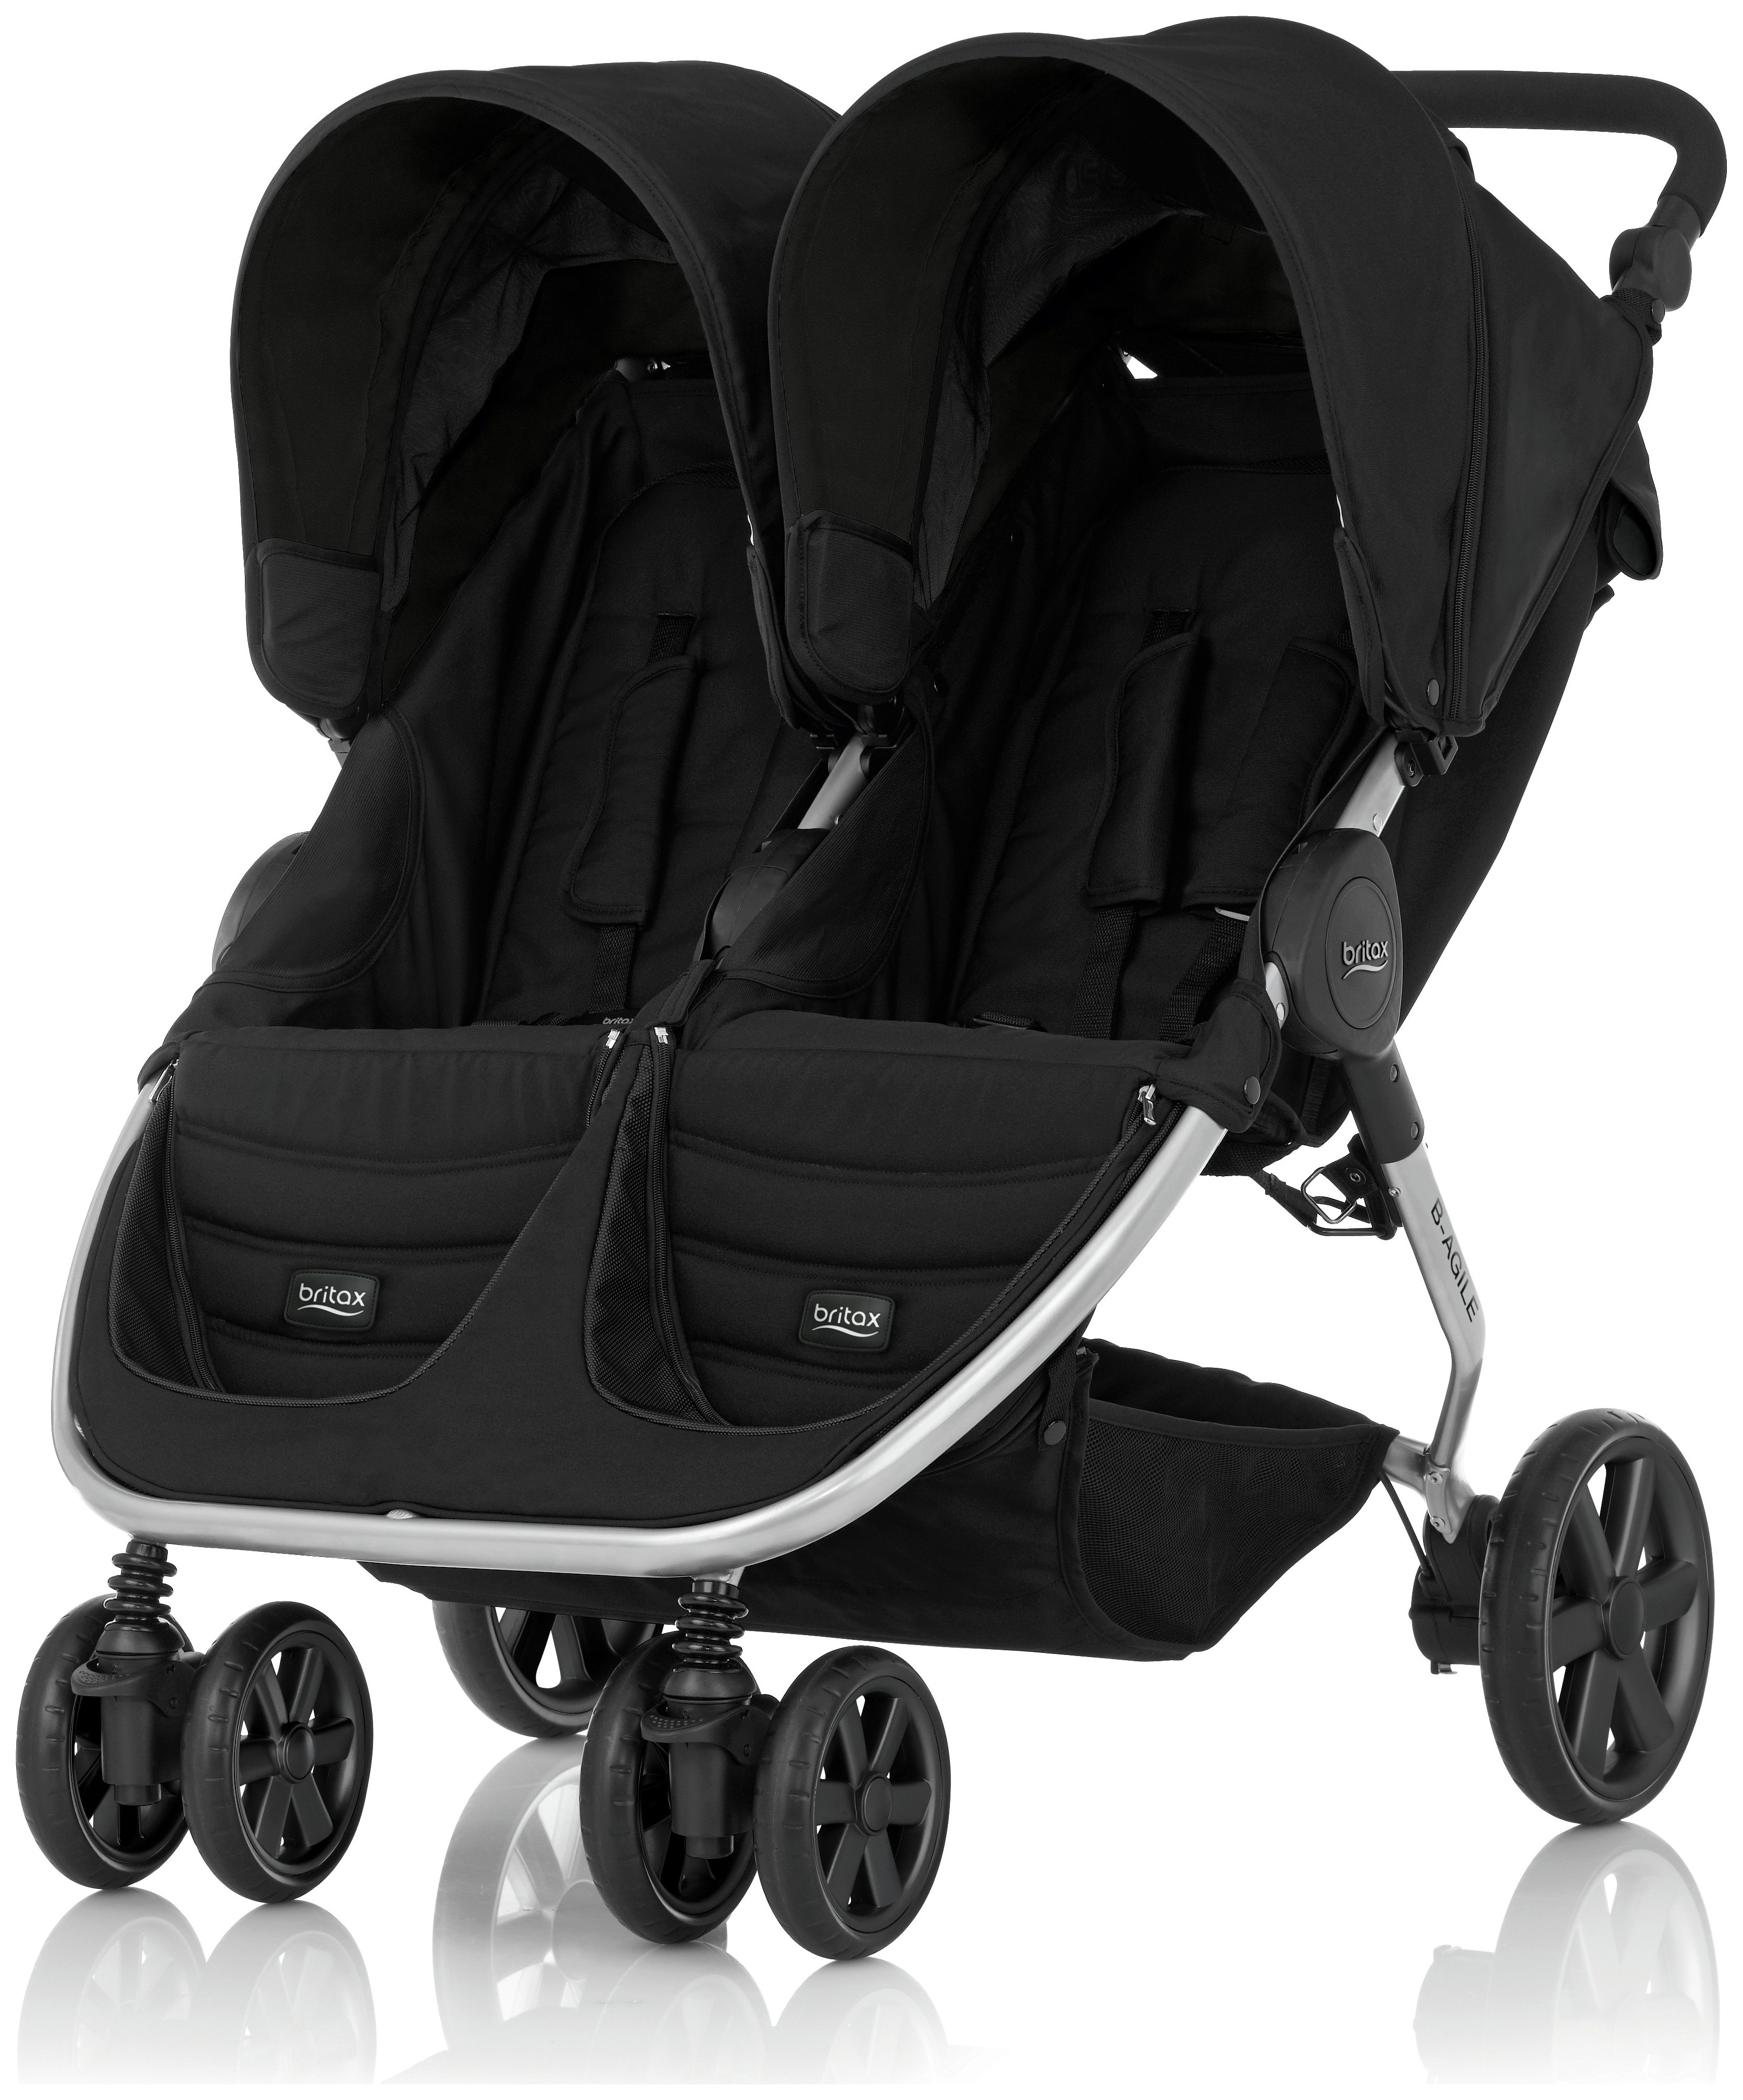 Image of Britax Romer B-AGILE DOUBLE Pushchair - Cosmos Black